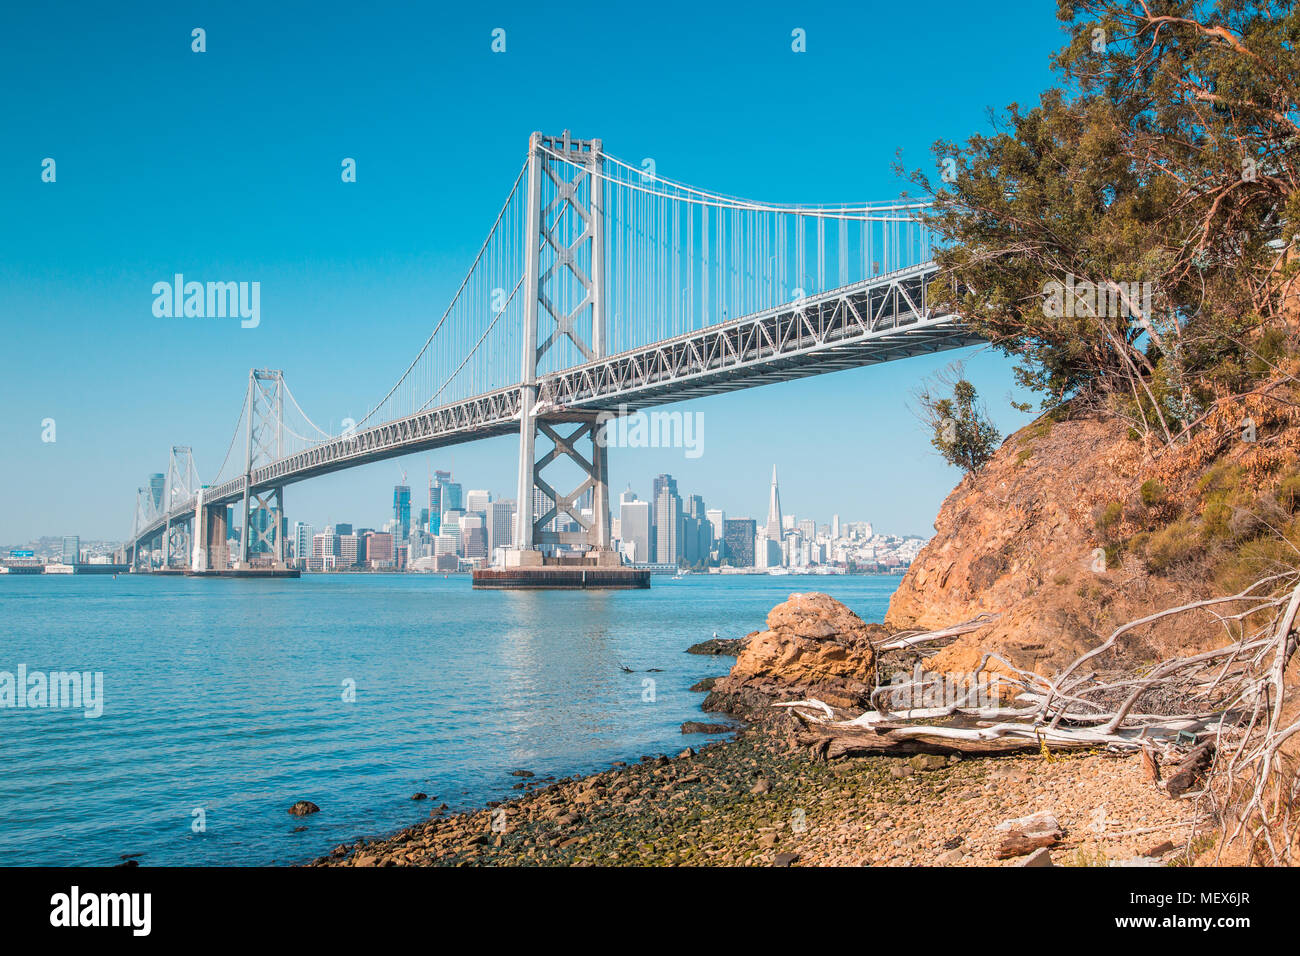 Classic panoramic view of San Francisco skyline with famous Oakland Bay Bridge illuminated on a sunny day with blue sky in summer, San Francisco - Stock Image